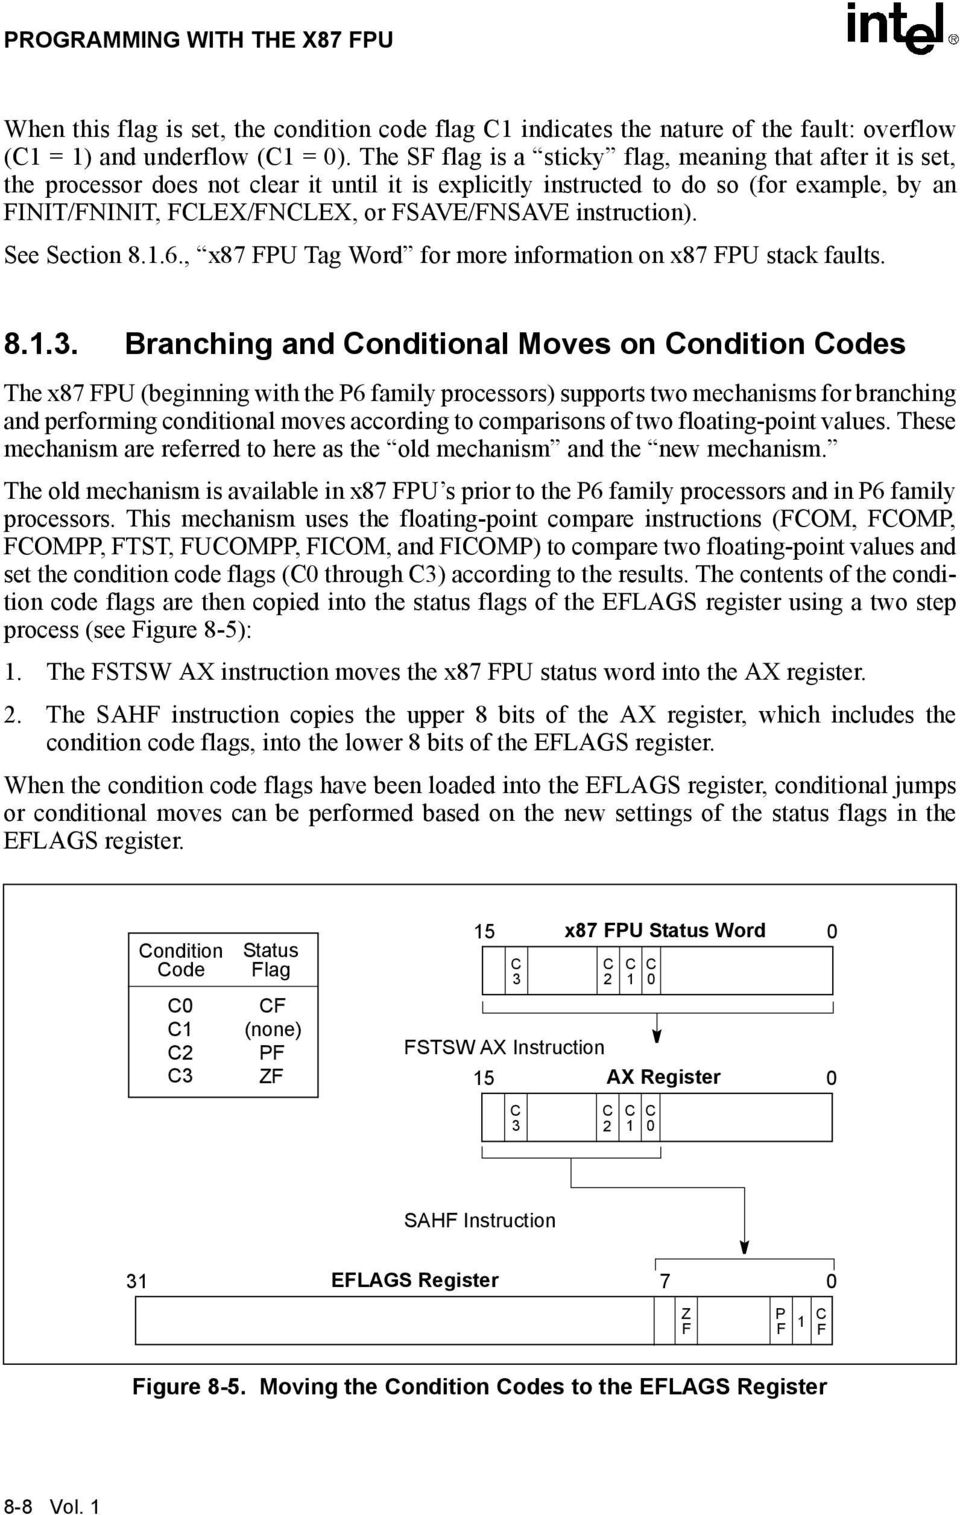 FPU stack faults 813 Branching and Conditional Moves on Condition Codes The x87 FPU (beginning with the P6 family processors) supports two mechanisms for branching and performing conditional moves